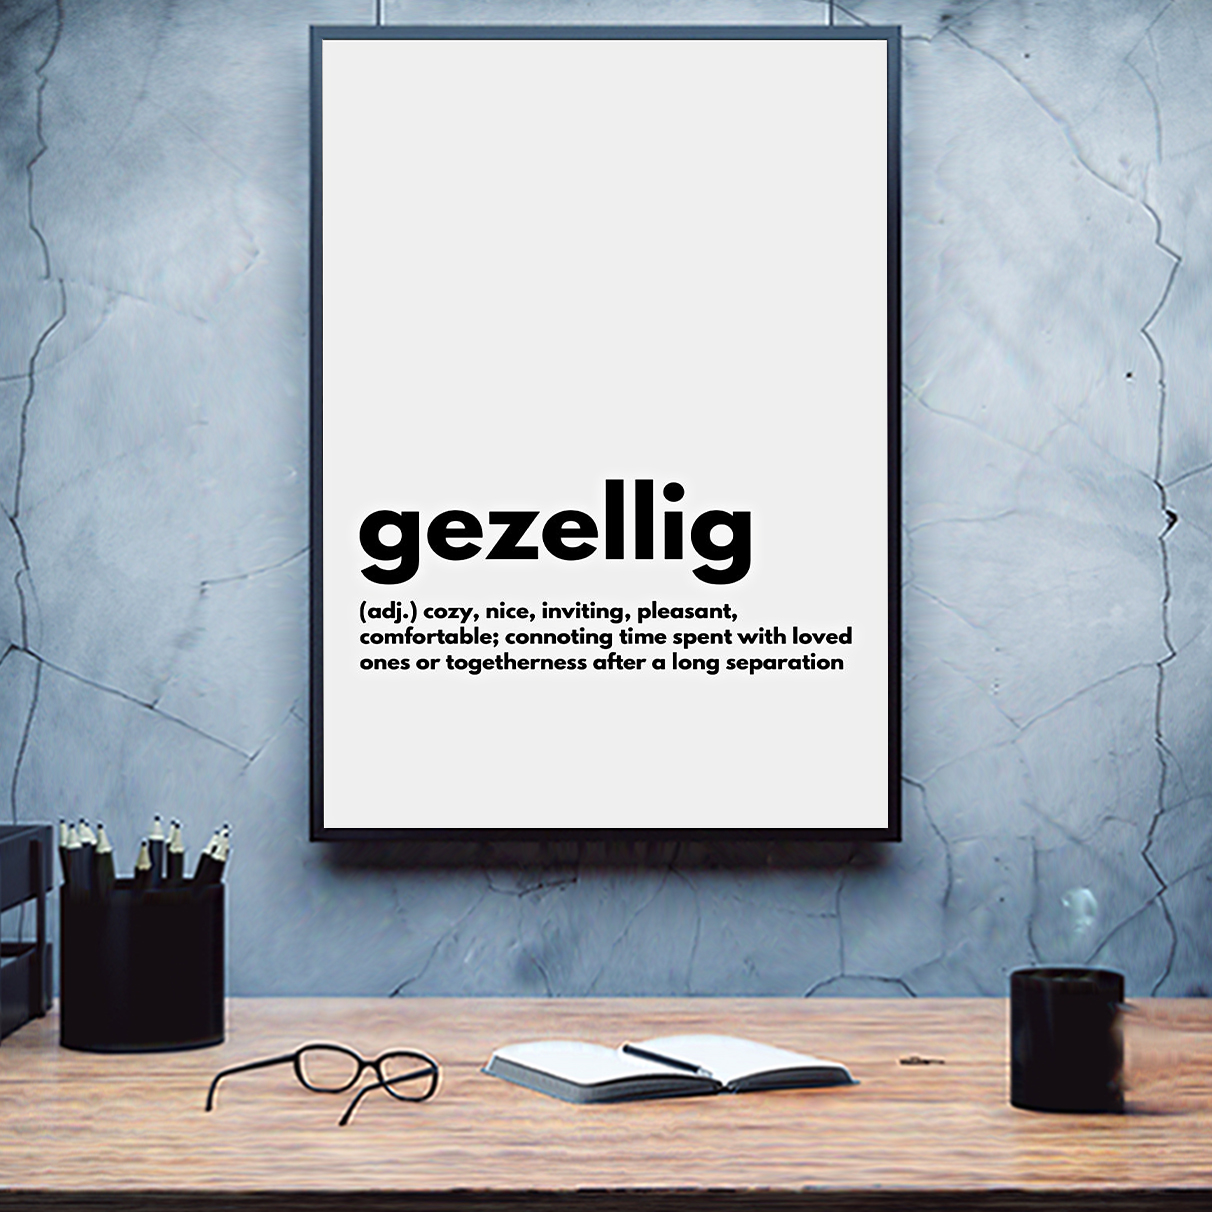 Gezellig definition cozy nice inviting poster A1